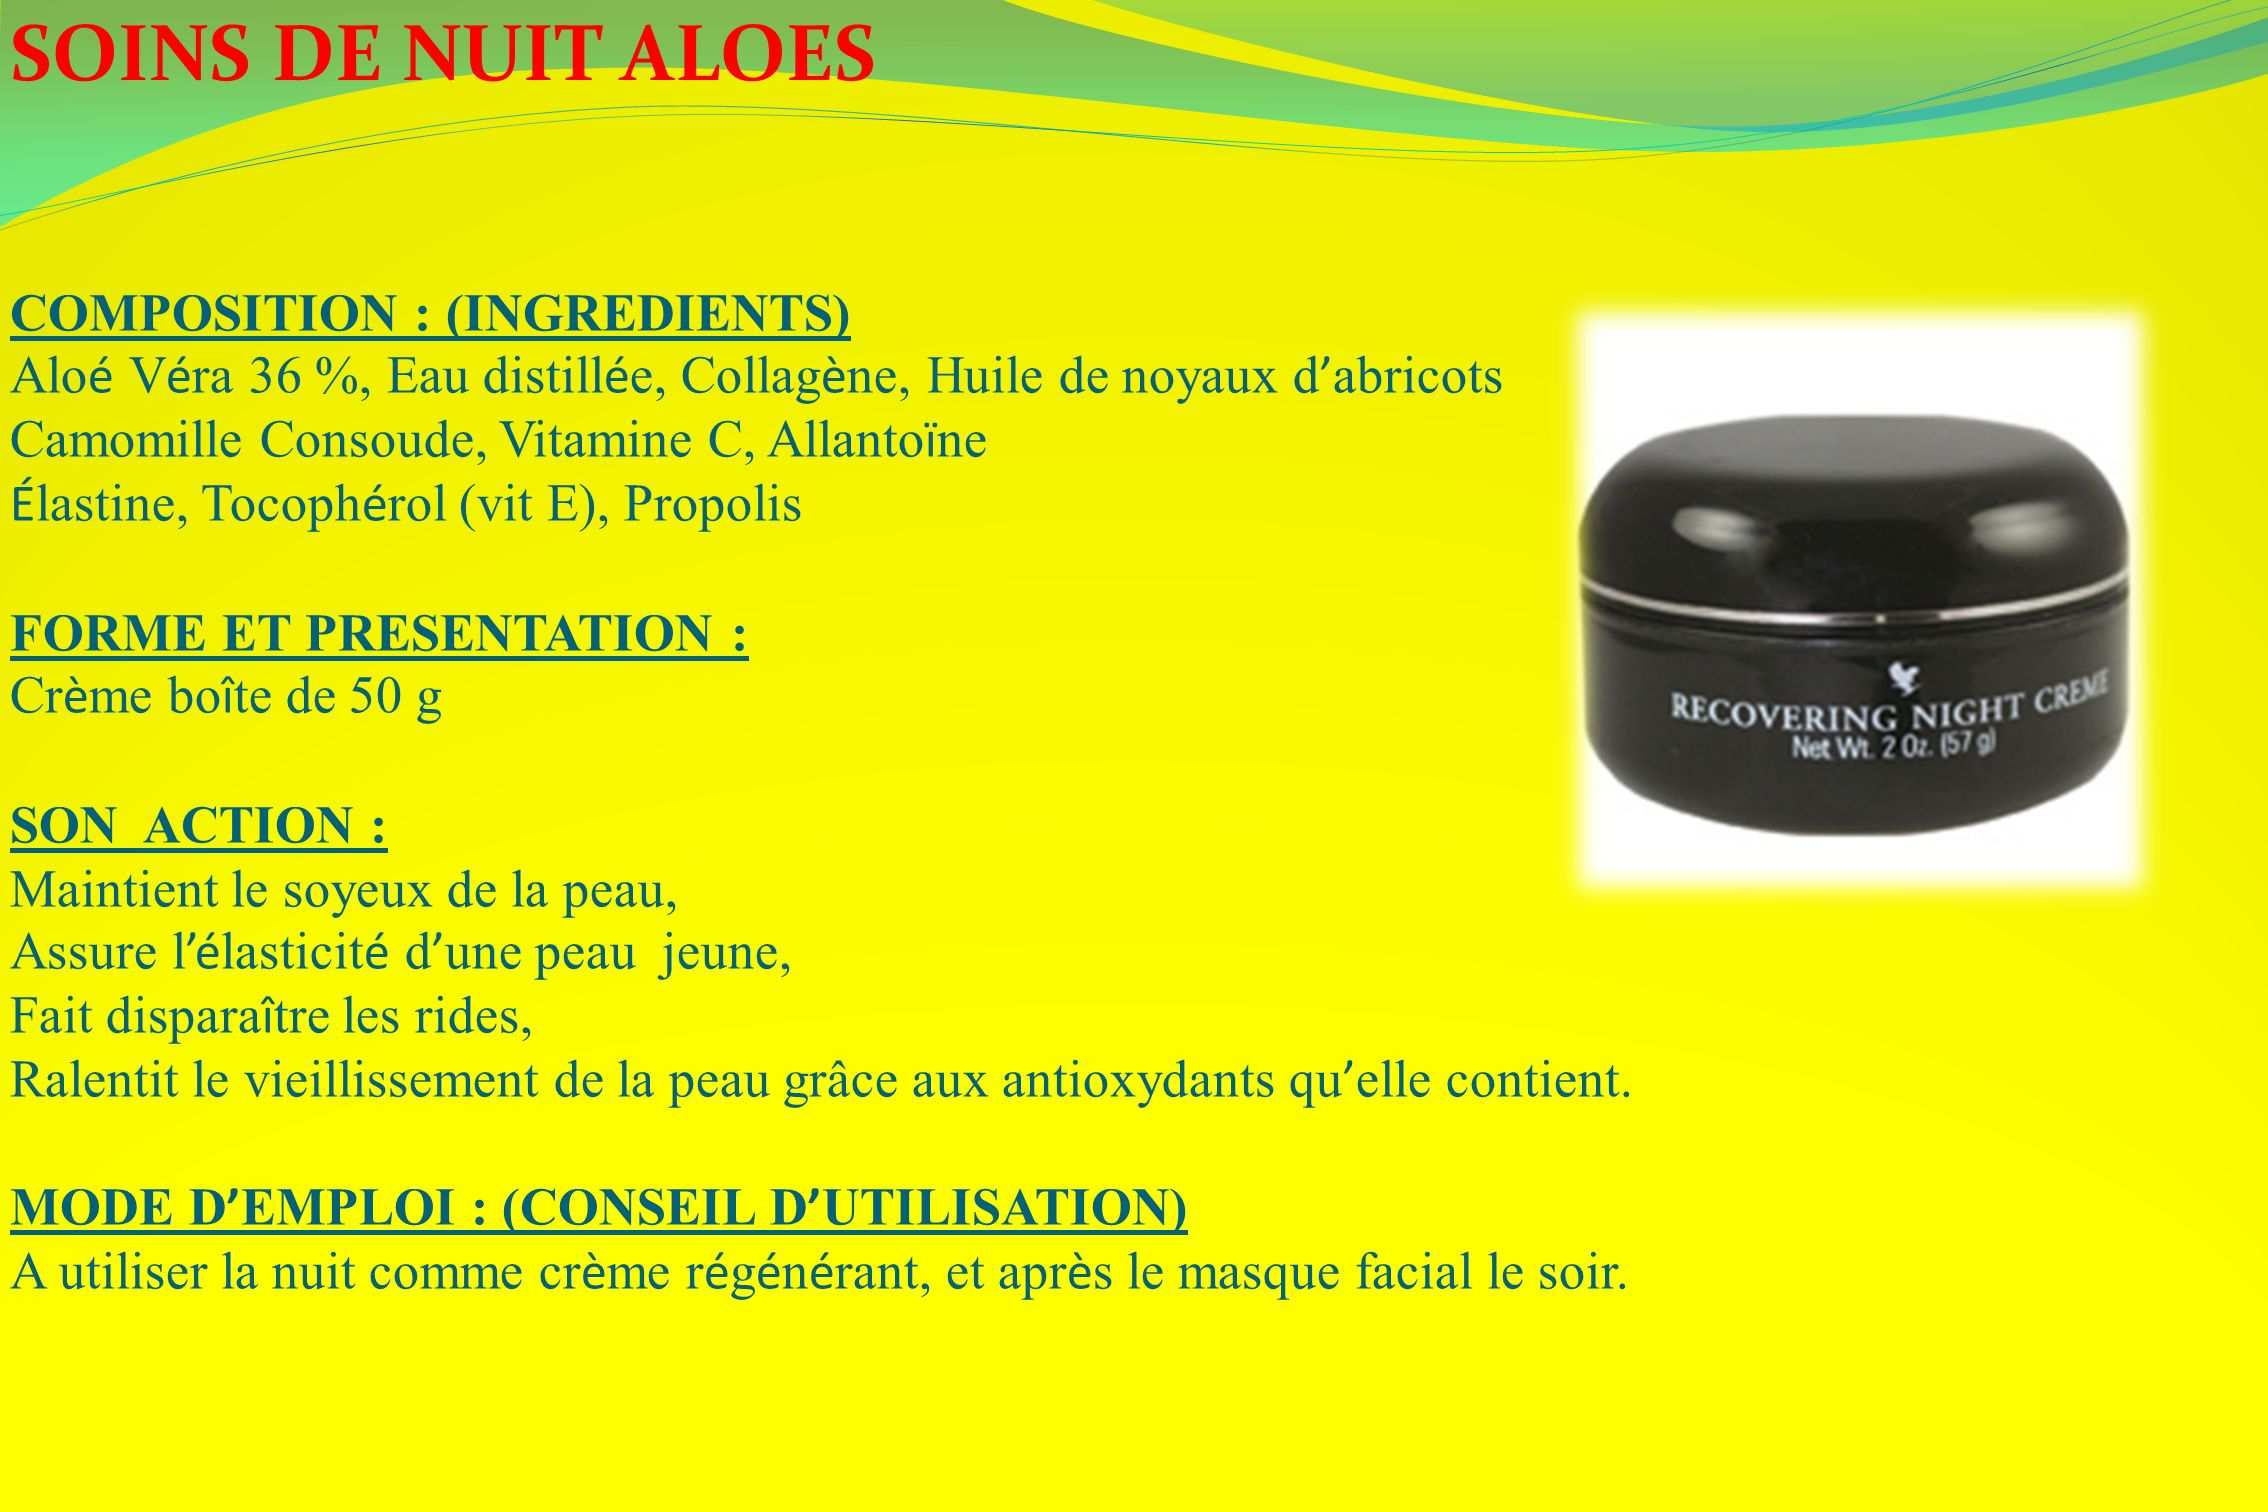 SOINS DE NUIT ALOES COMPOSITION : (INGREDIENTS)